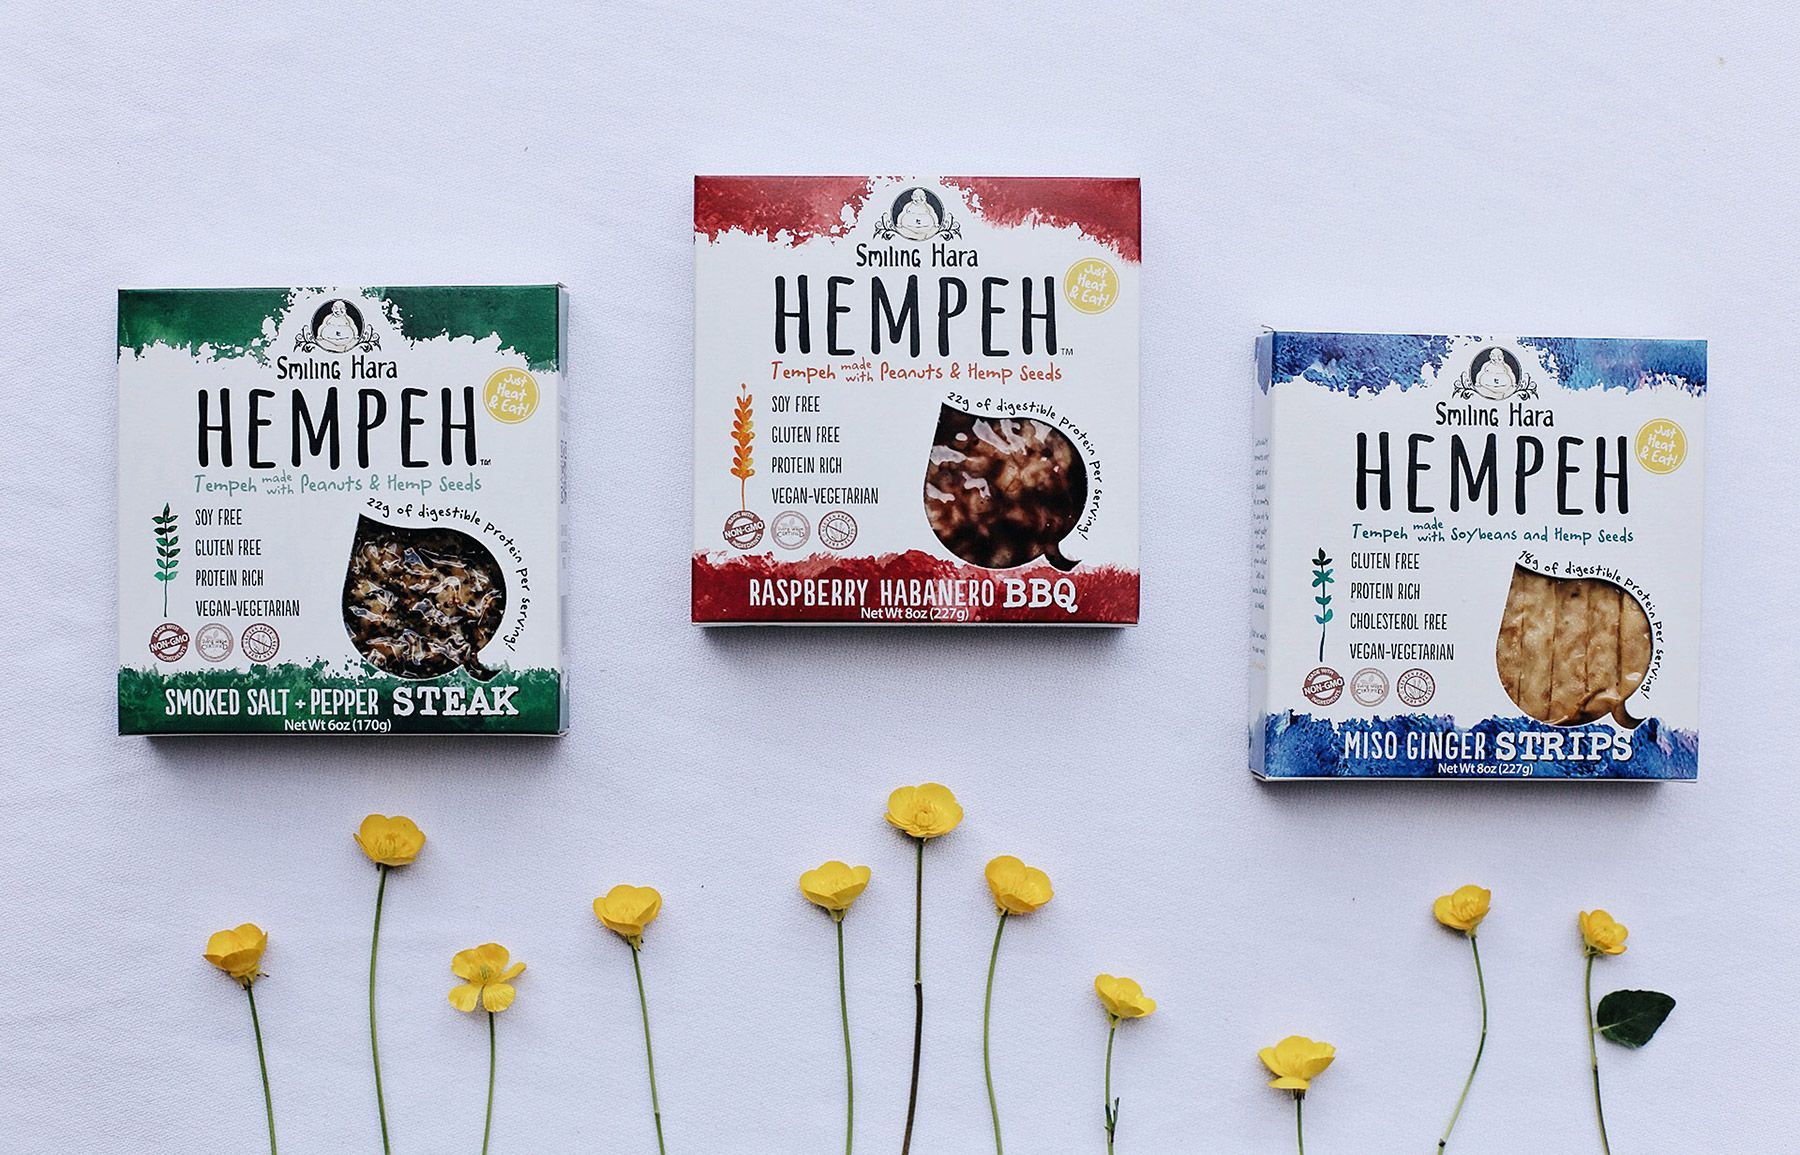 Three hempeh flavor packages